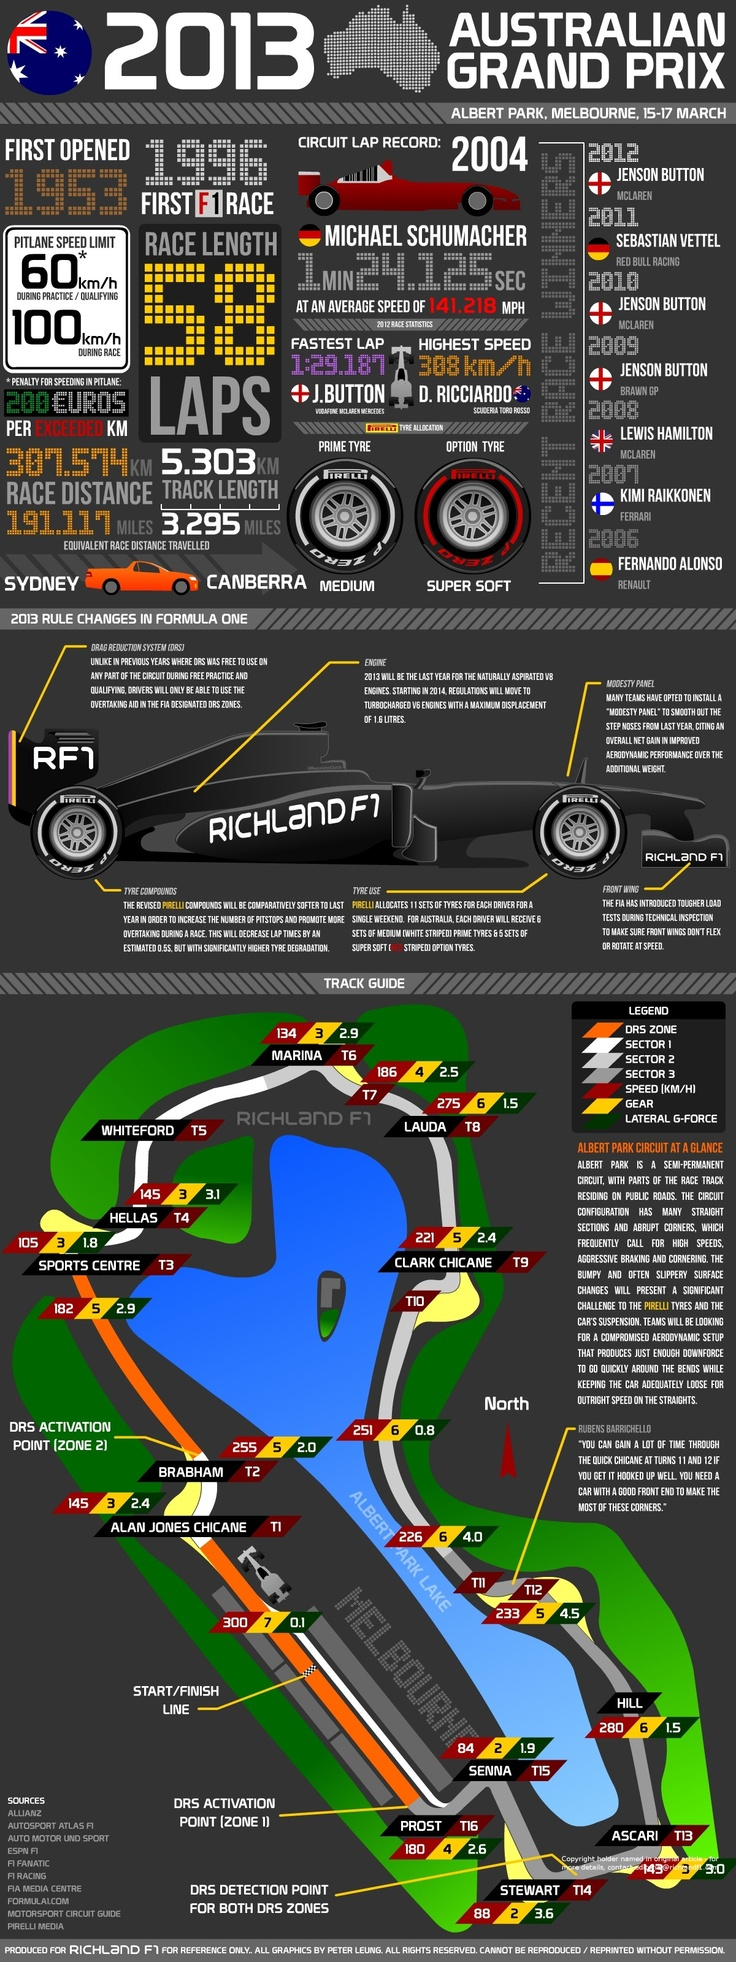 2013 #F1 Australian Grand Prix: Facts & Figures (RichlandF1)